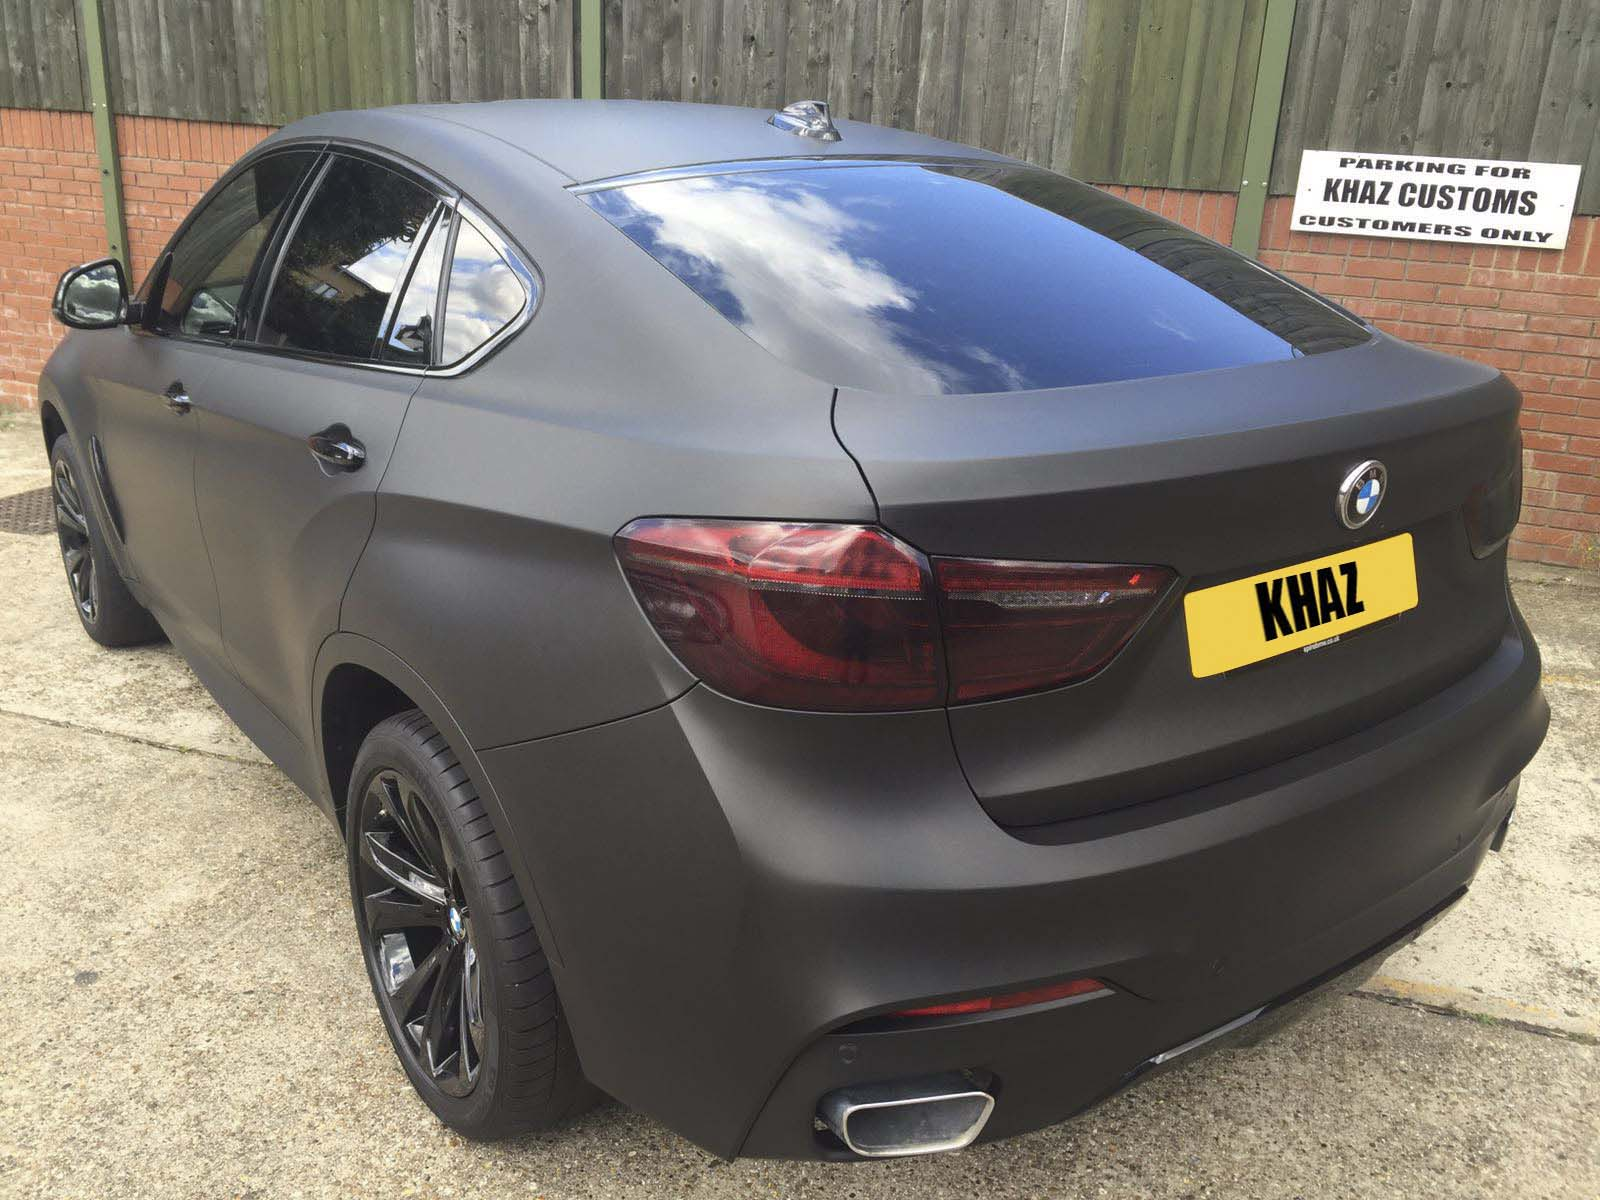 BMW X6 Wrapped Matte Black